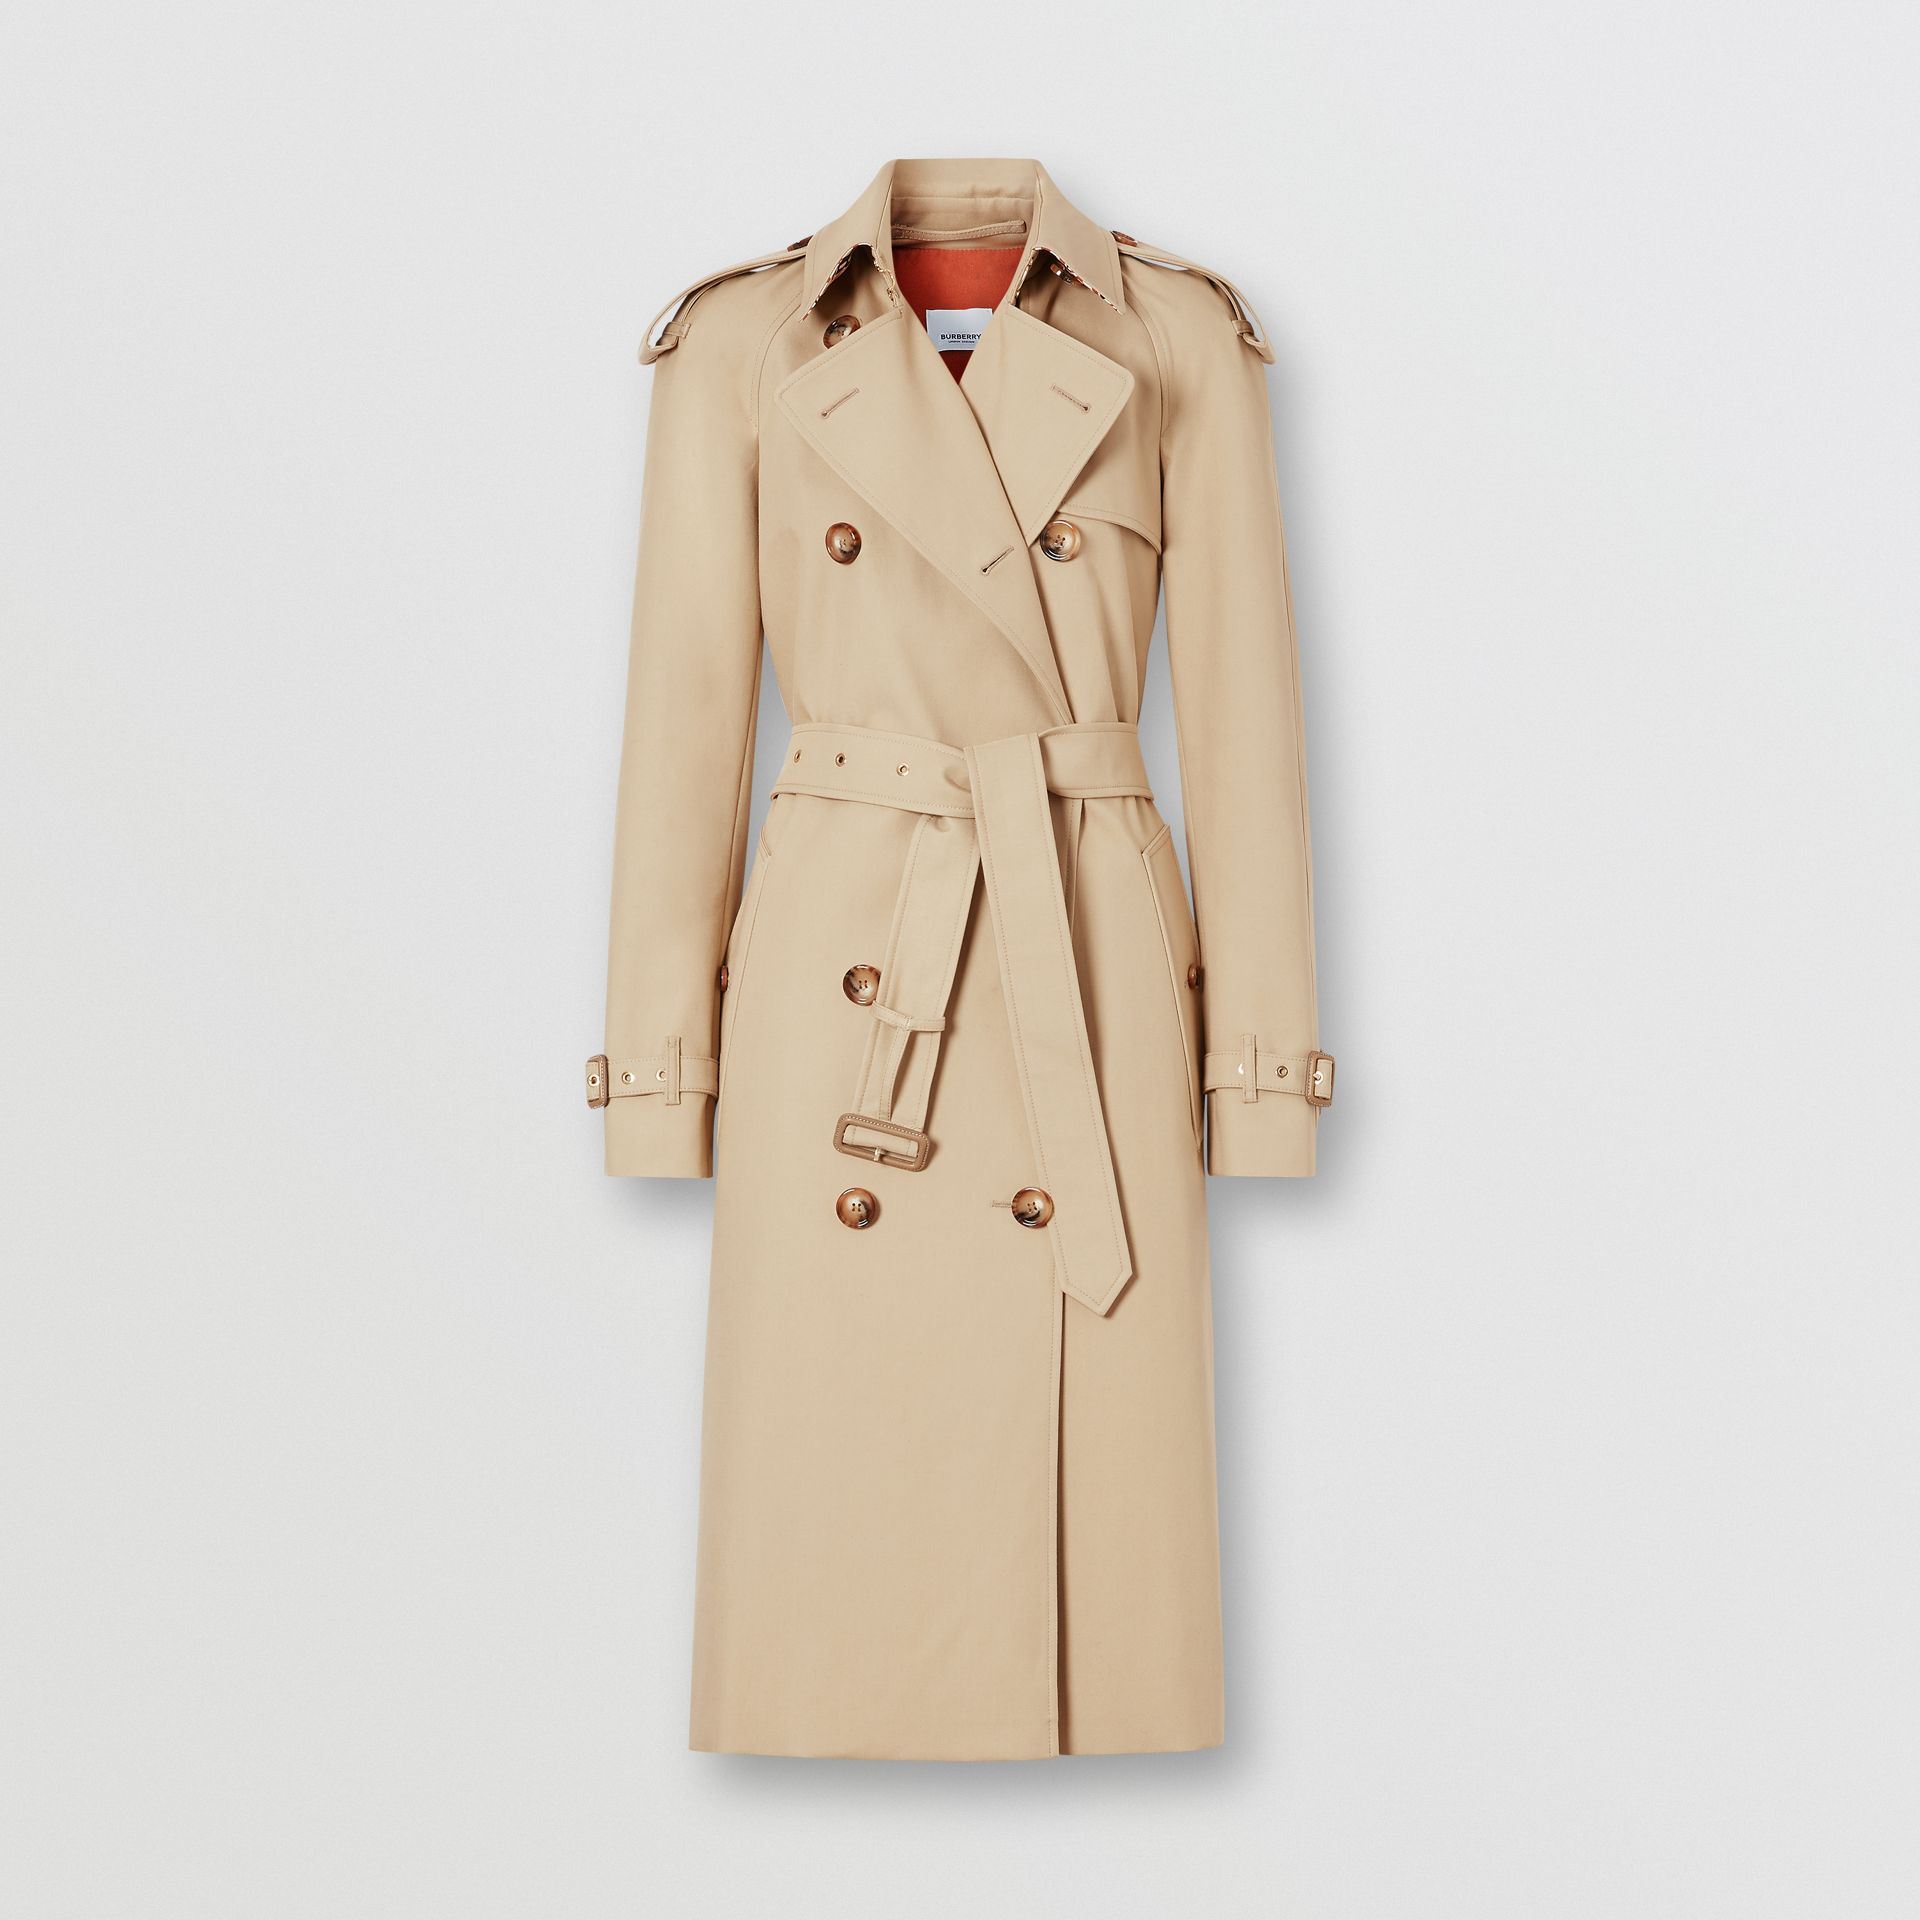 Archive Print-lined Cotton Gabardine Trench Coat in Honey - Women | Burberry Australia - gallery image 3